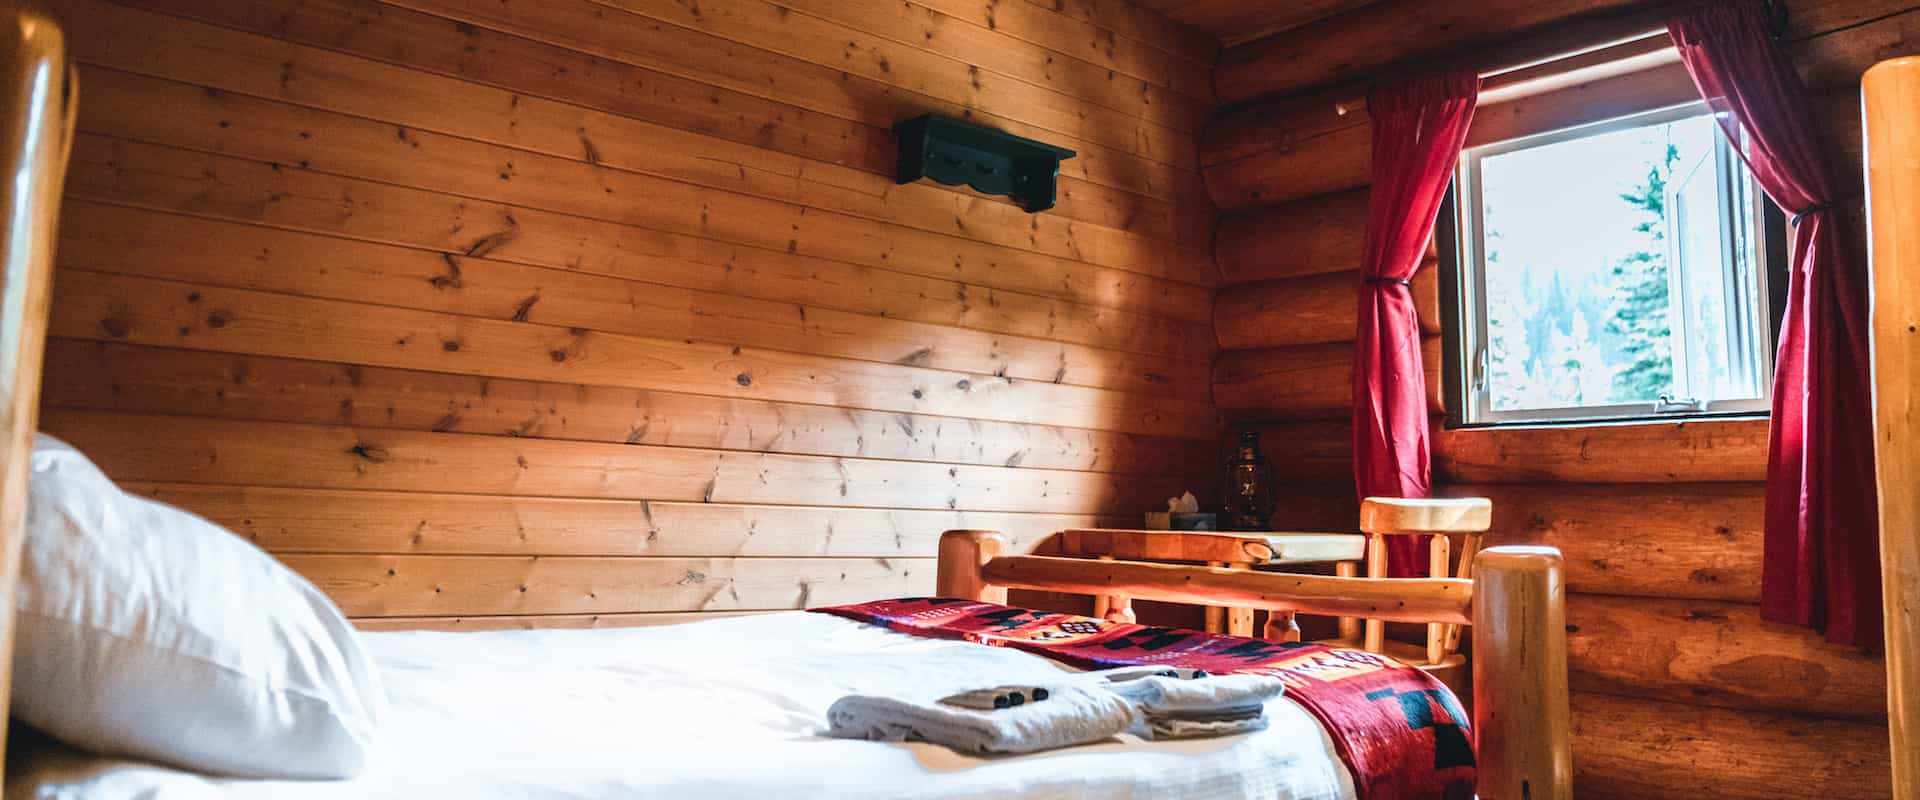 Sleep in a comfortable bed at cozy Sundance Lodge